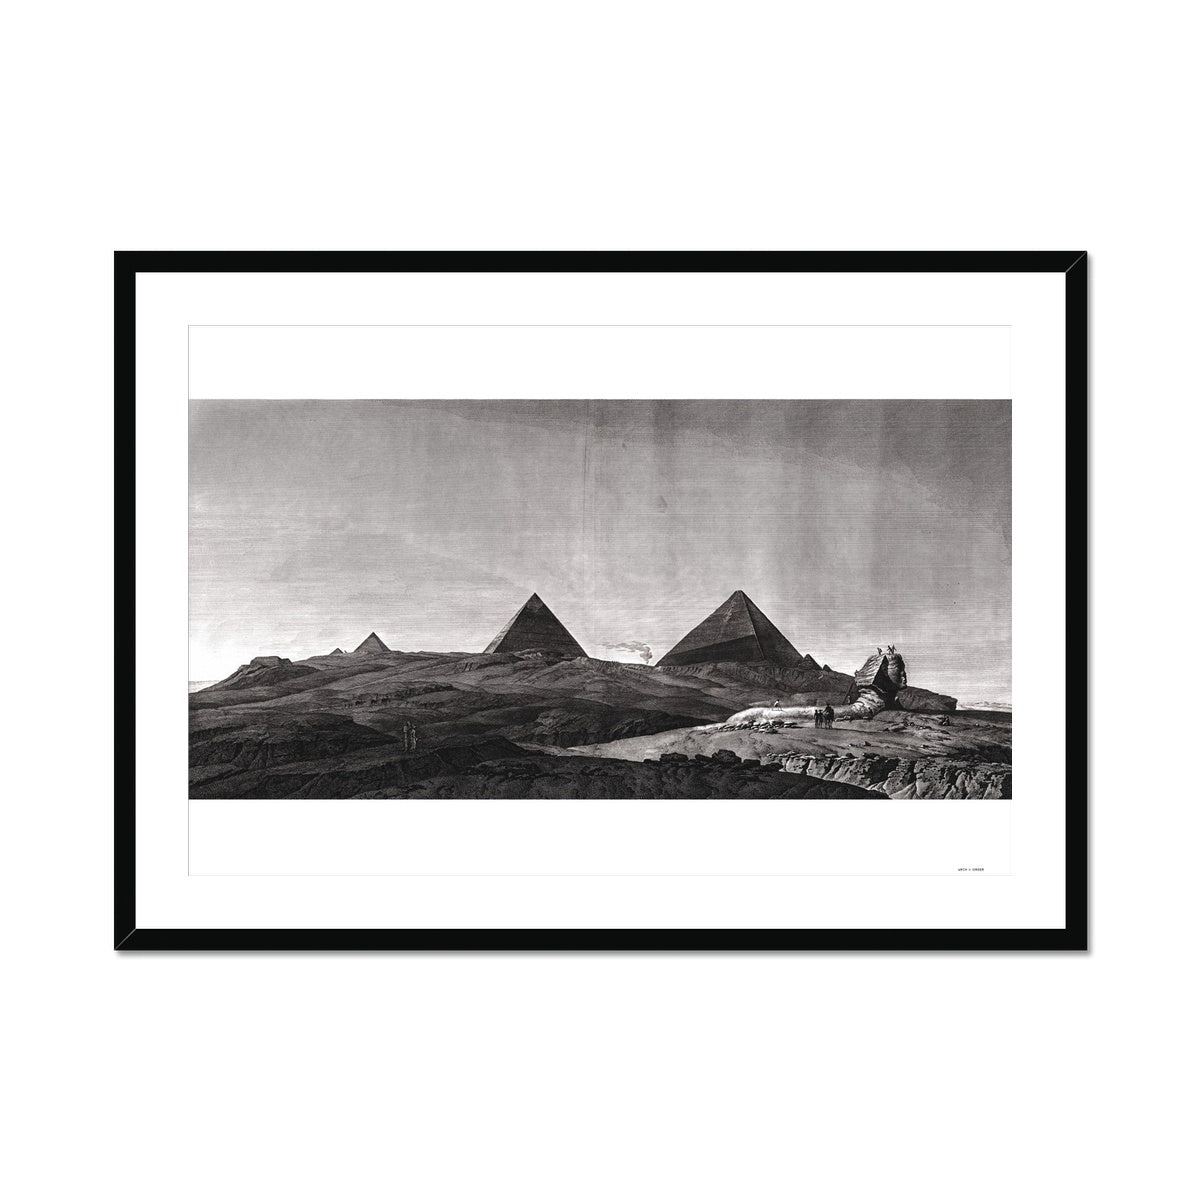 View of the Pyramids of Giza and Sphinx - Memphis Egypt -  Framed & Mounted Print